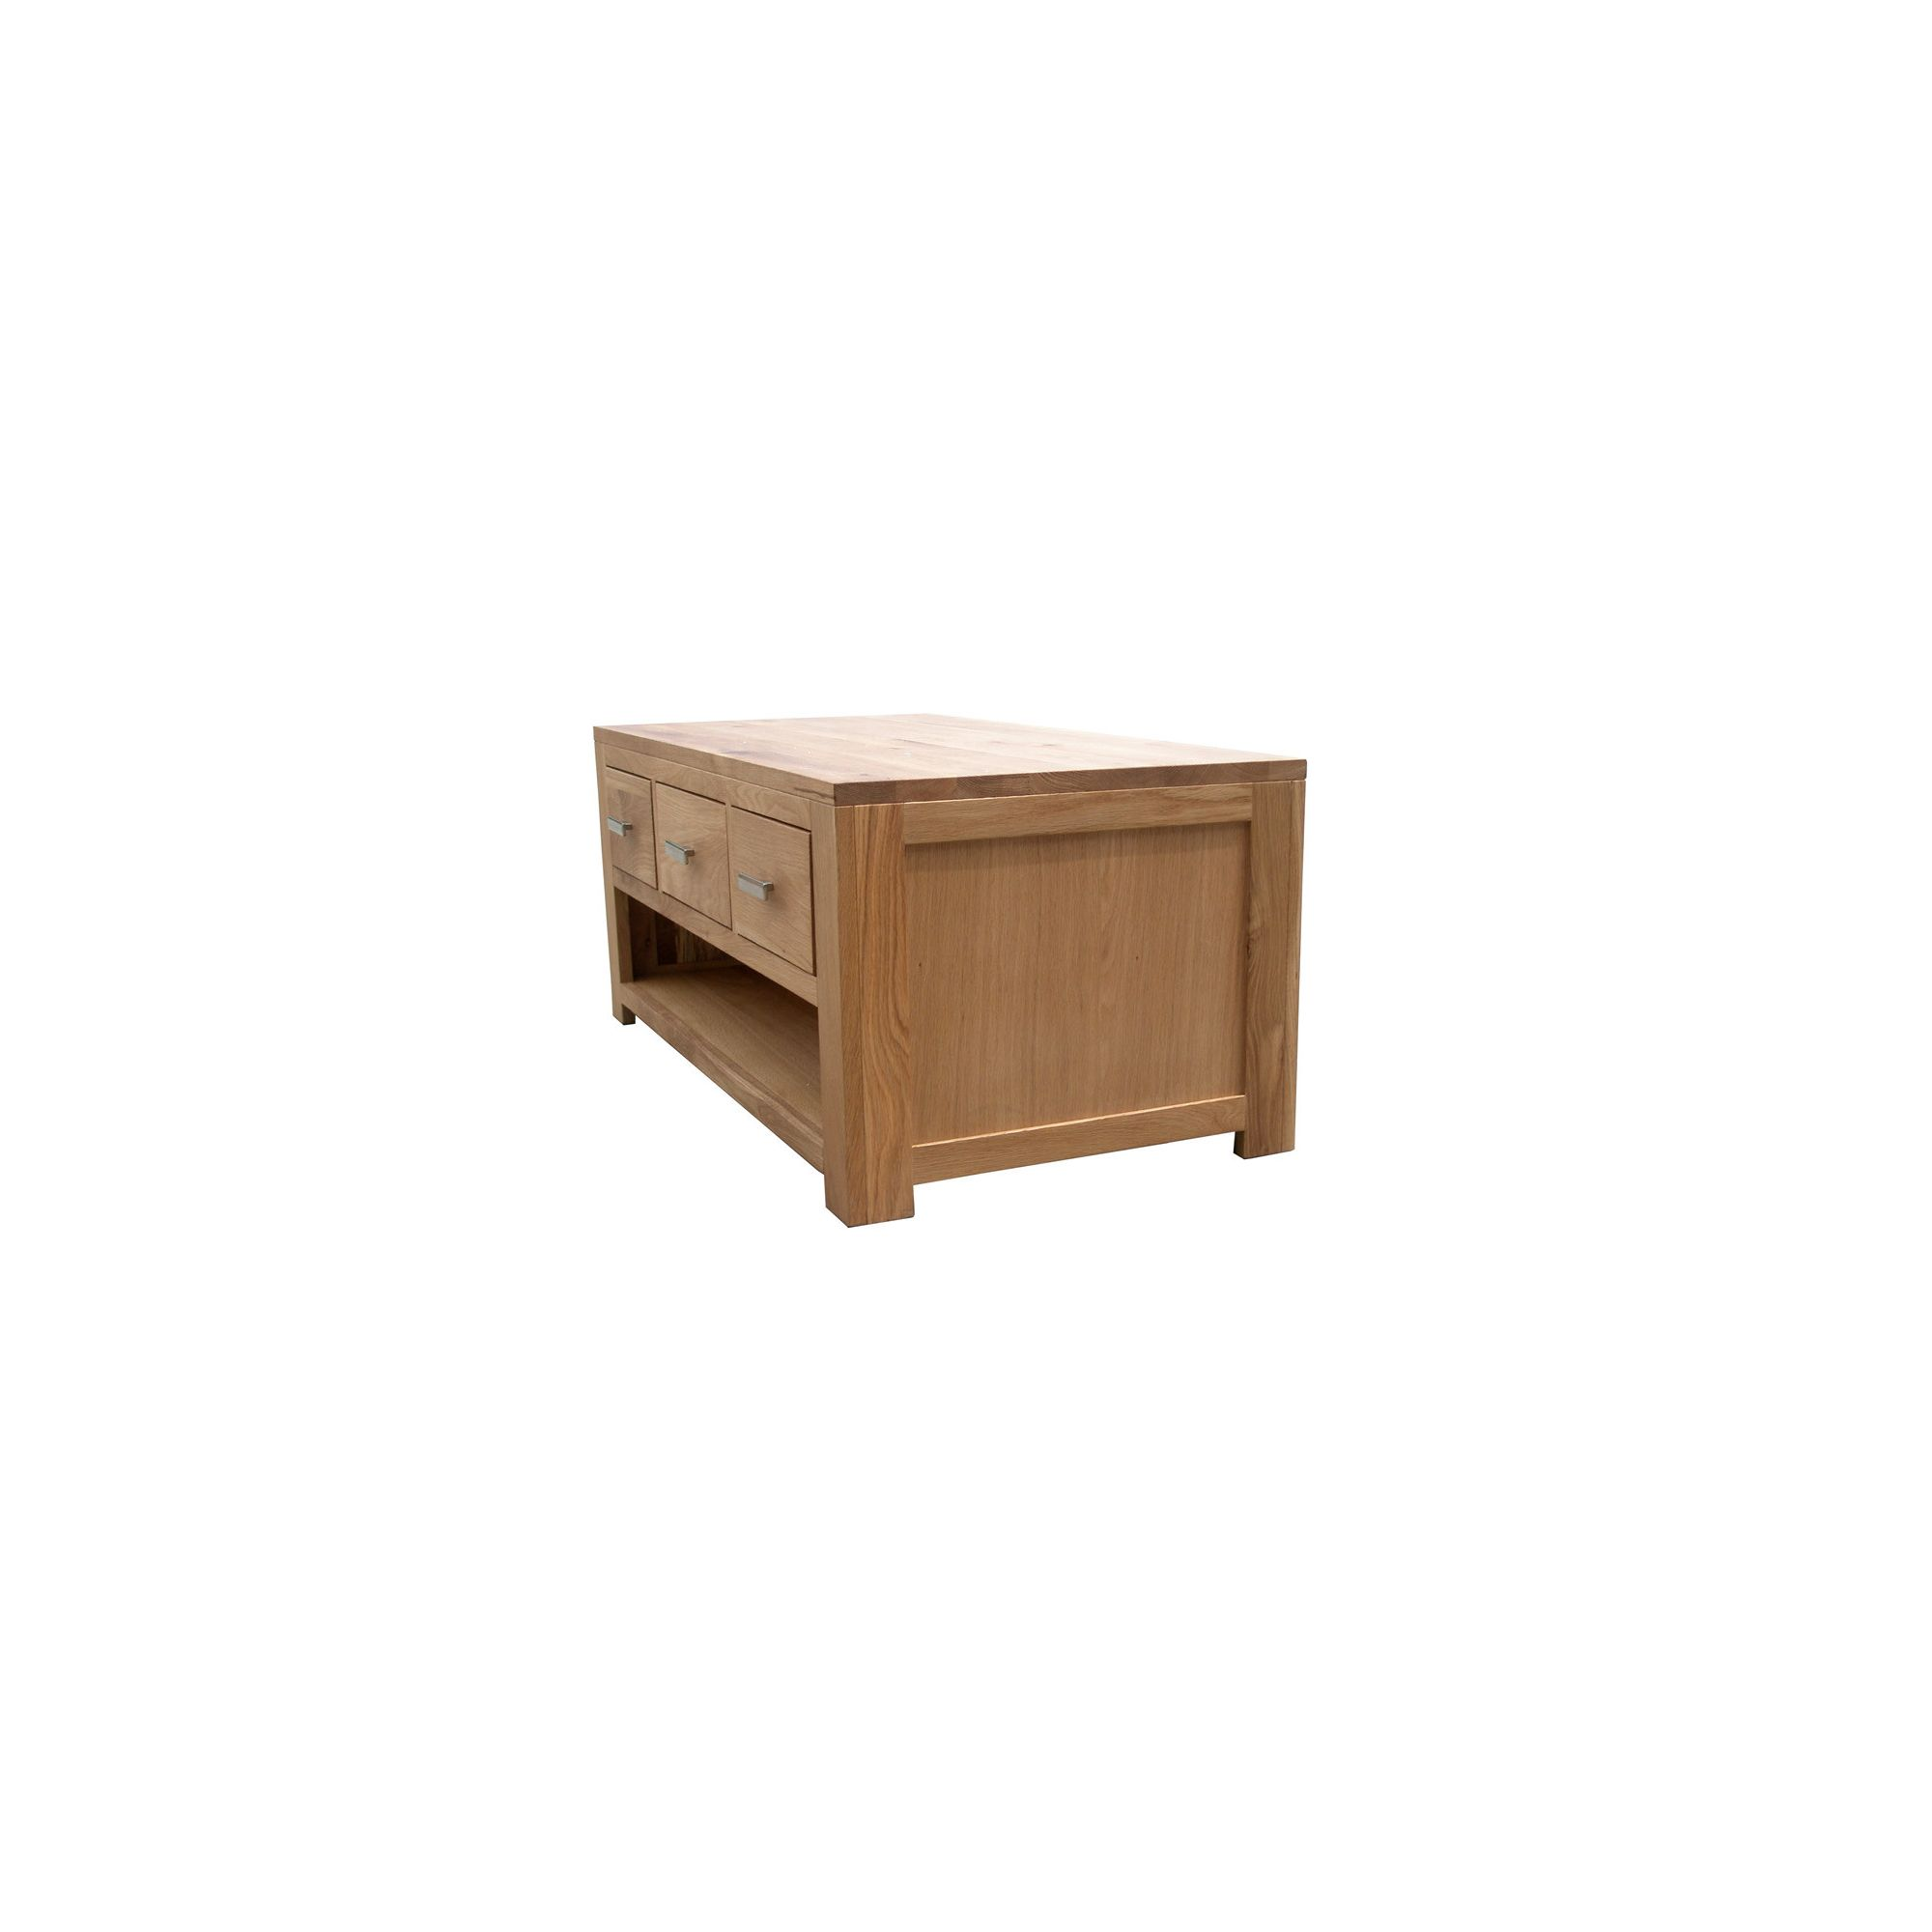 Home Zone Furniture Churchill Oak 2010 Three Drawer Coffee Table in Natural Oak at Tesco Direct